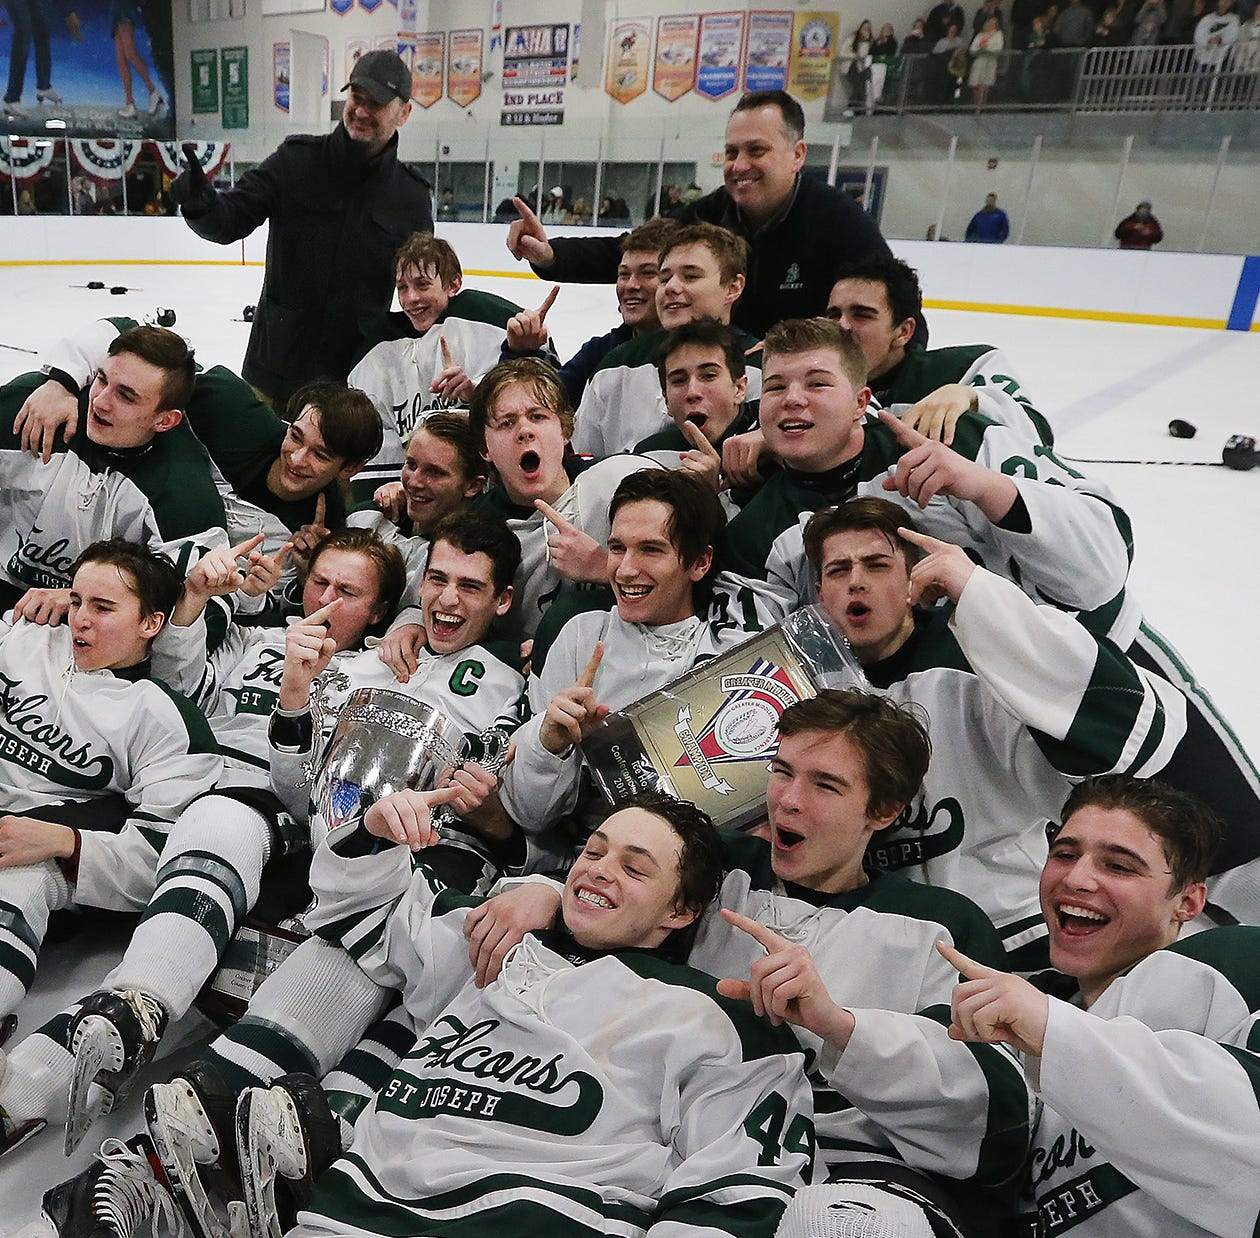 St. Joseph ice hockey team reclaims GMC championship with flawless execution